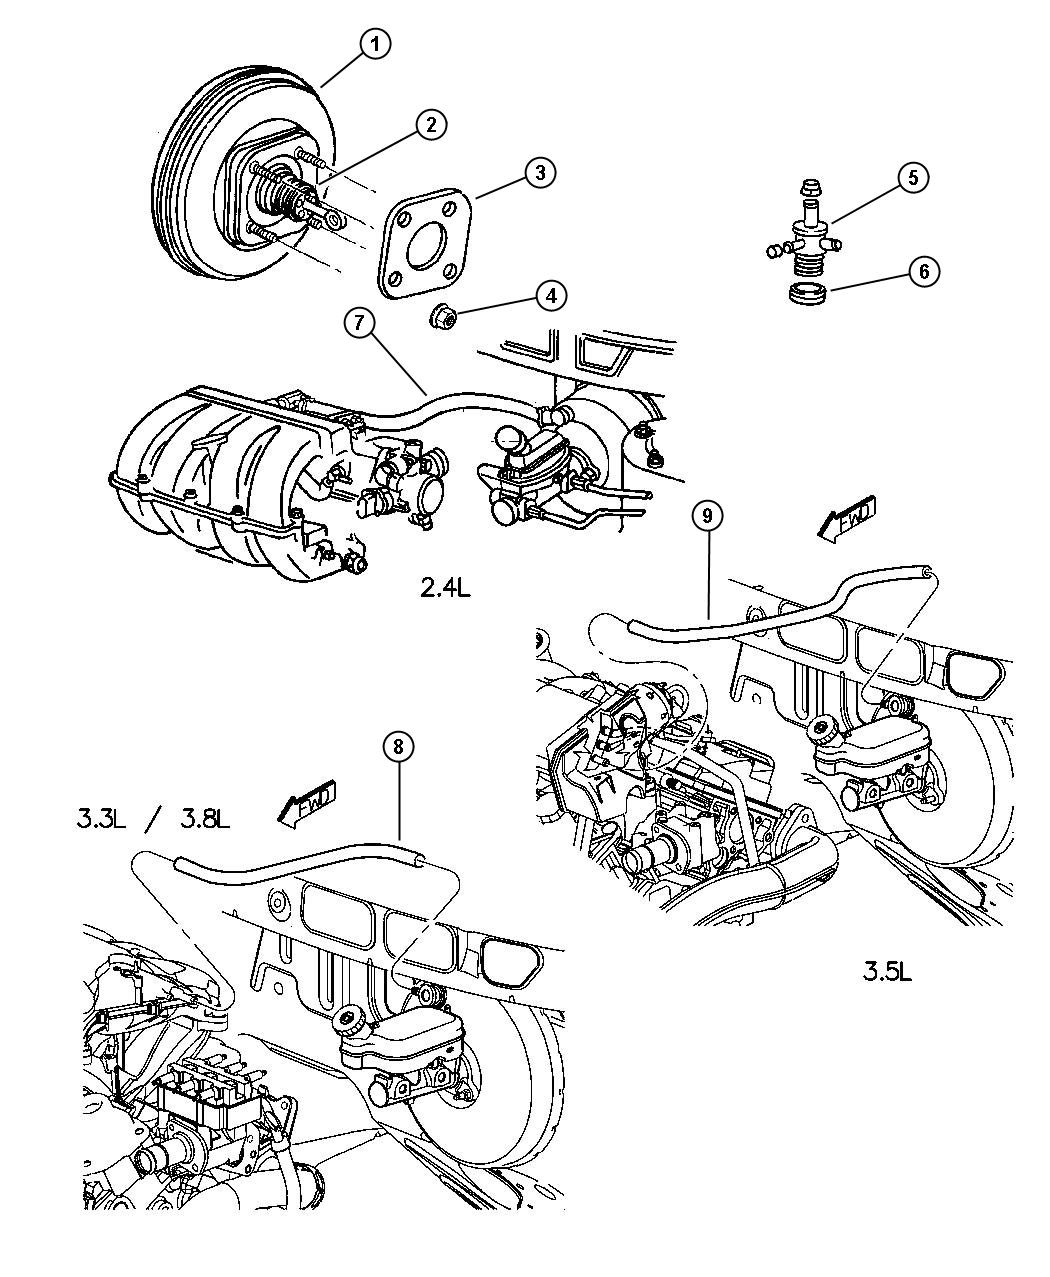 Wiring Diagram 95 Dodge Neon likewise 57 Chevy Coil Wiring Diagram additionally Bobcat Windshield Wiper Motor Wiring Diagram And besides 57 Chevy Radio Wiring Diagram besides 2005 Bmw E46 Radio Wiring Diagram. on help my truck shutoff highway fuel solenoid 131847